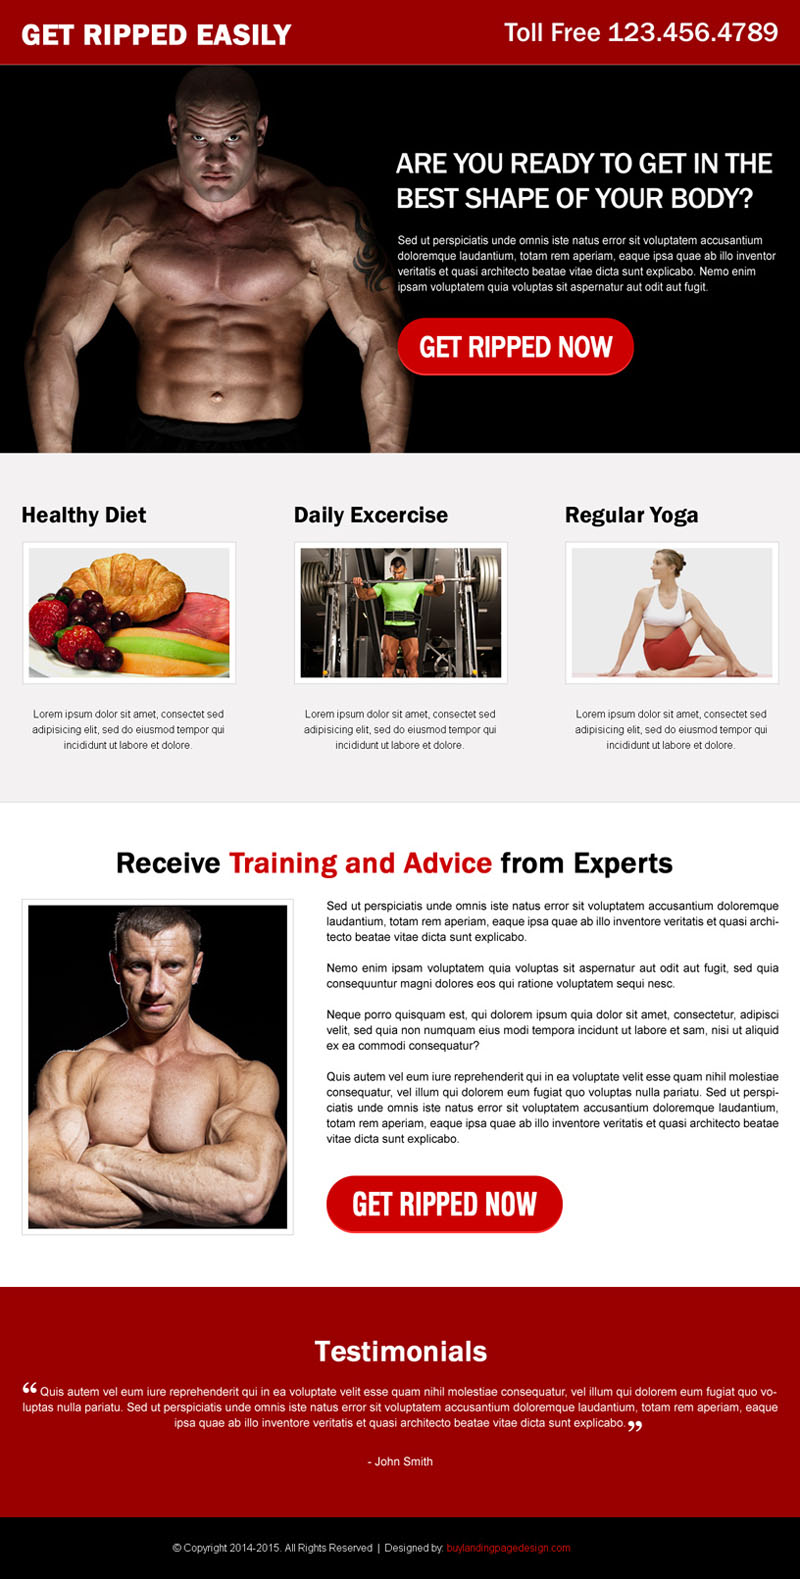 get-ripped-easily-bodybuilding-call-to-action-converting-landing-page-design-templates-016